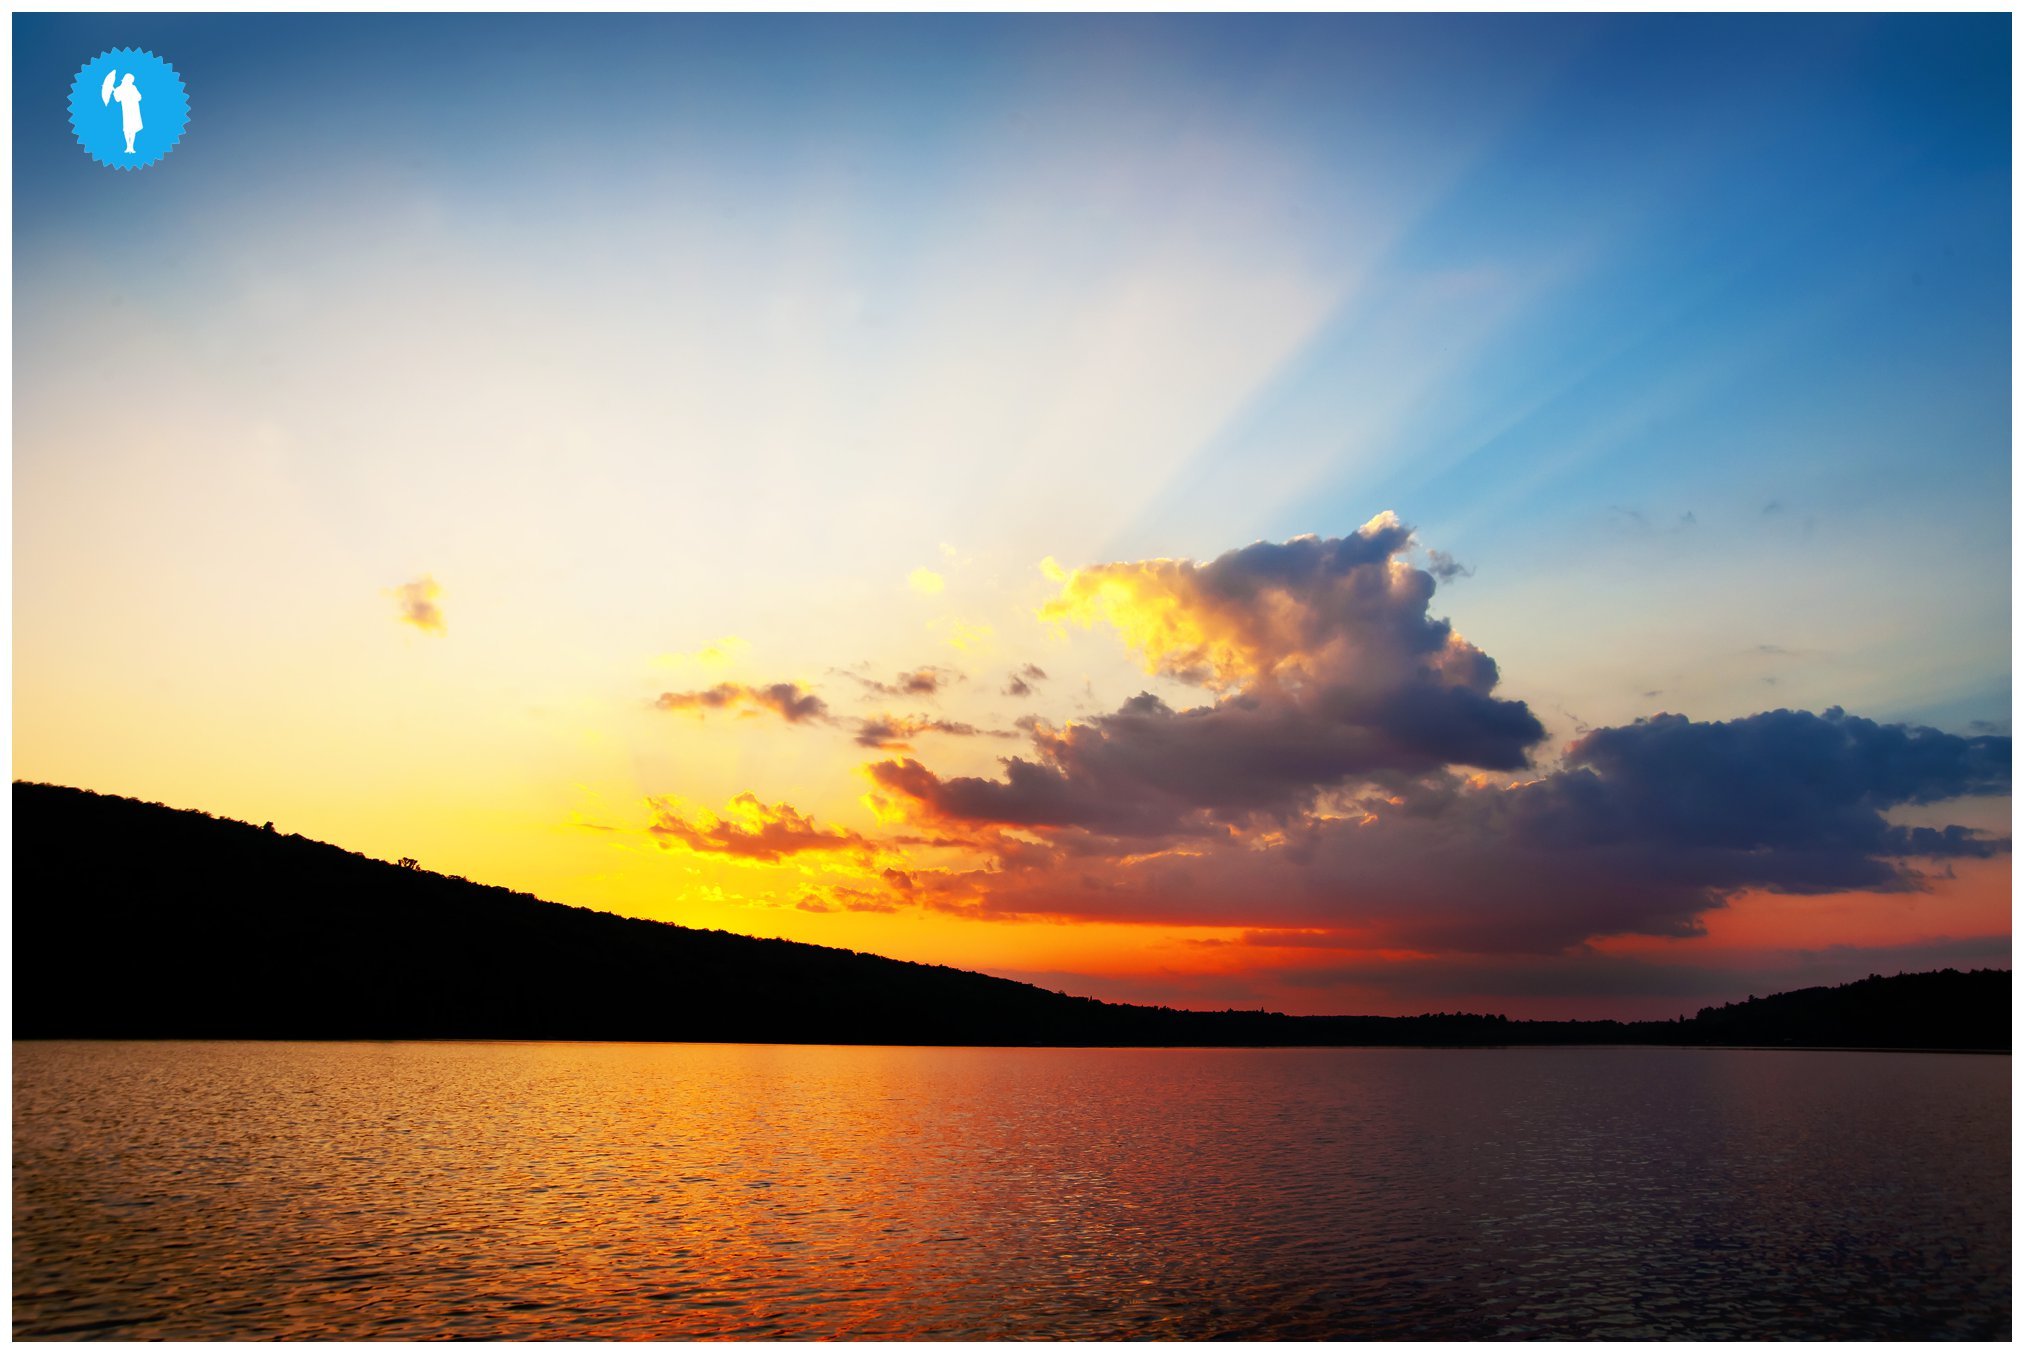 Sunset in Algonquin Park photography by Emily Beatty Imagery 2013.